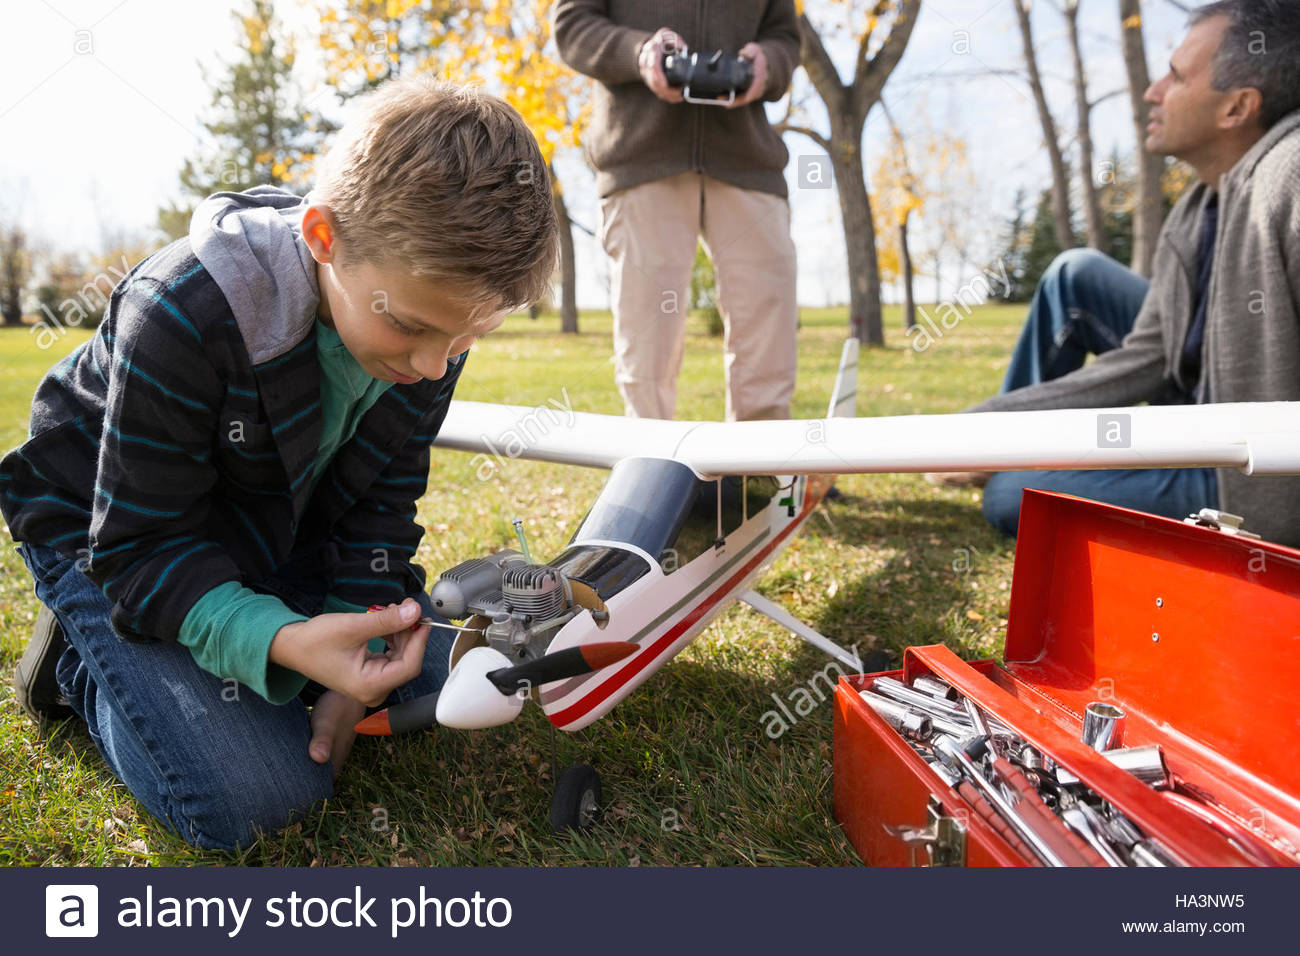 Boy fixing model airplane with father and grandfather in park - Stock Image